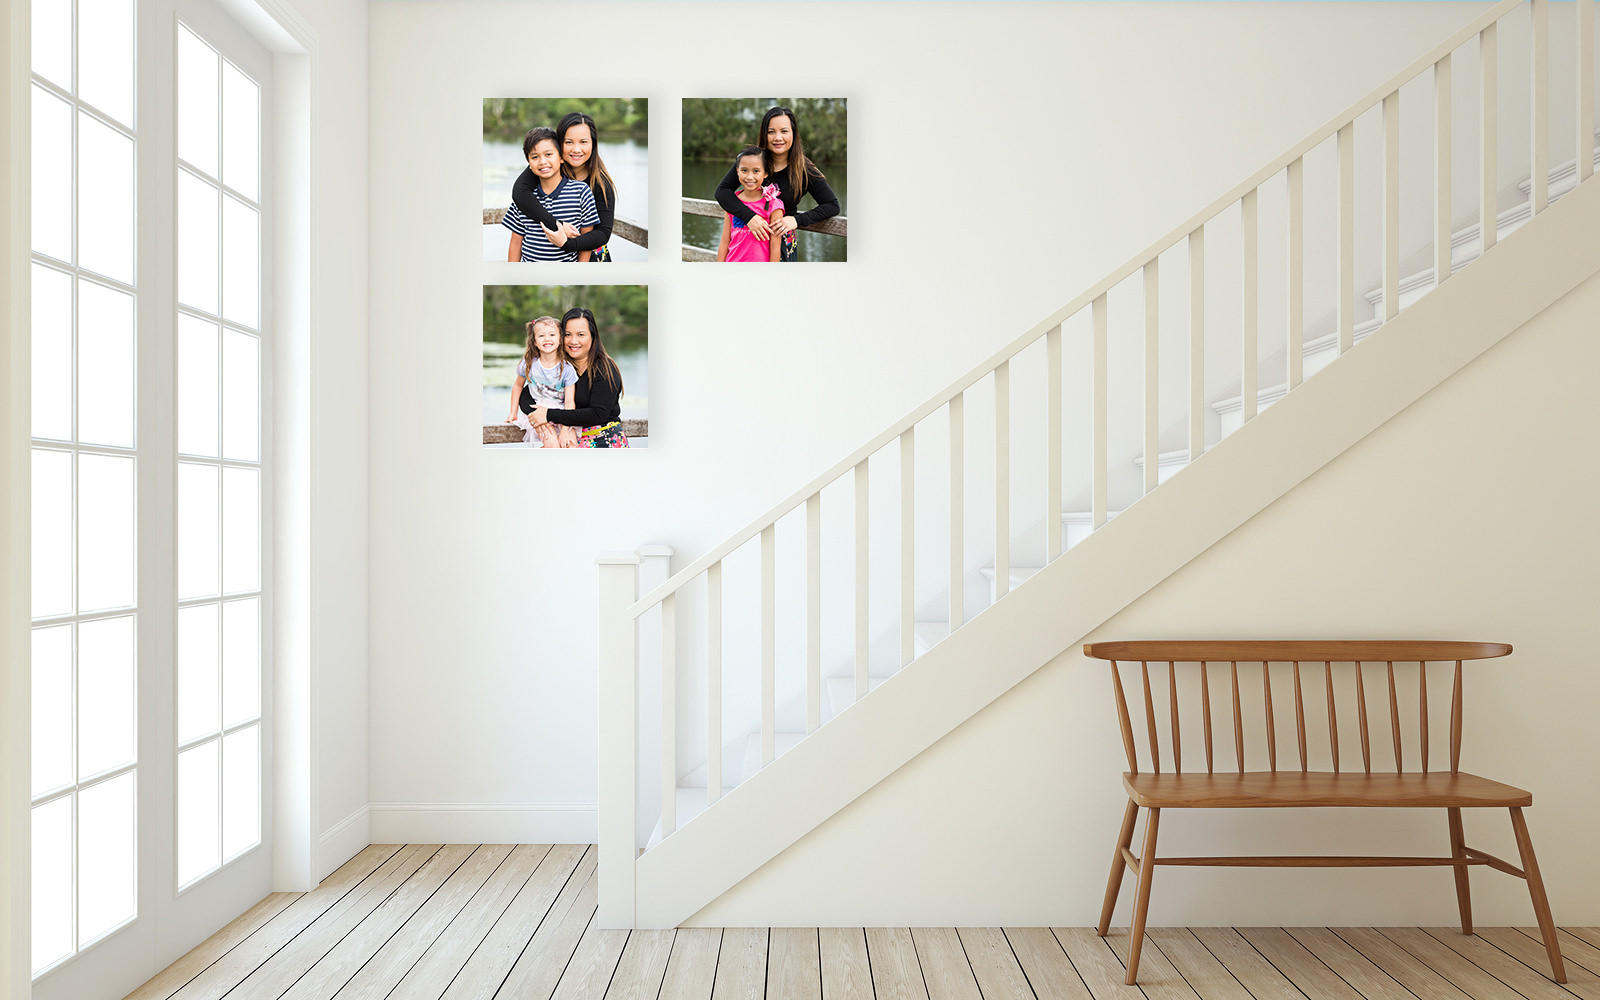 Family portraits shown on 3 canvas prints in hallway going up stairs by caboolture outdoor family photographer